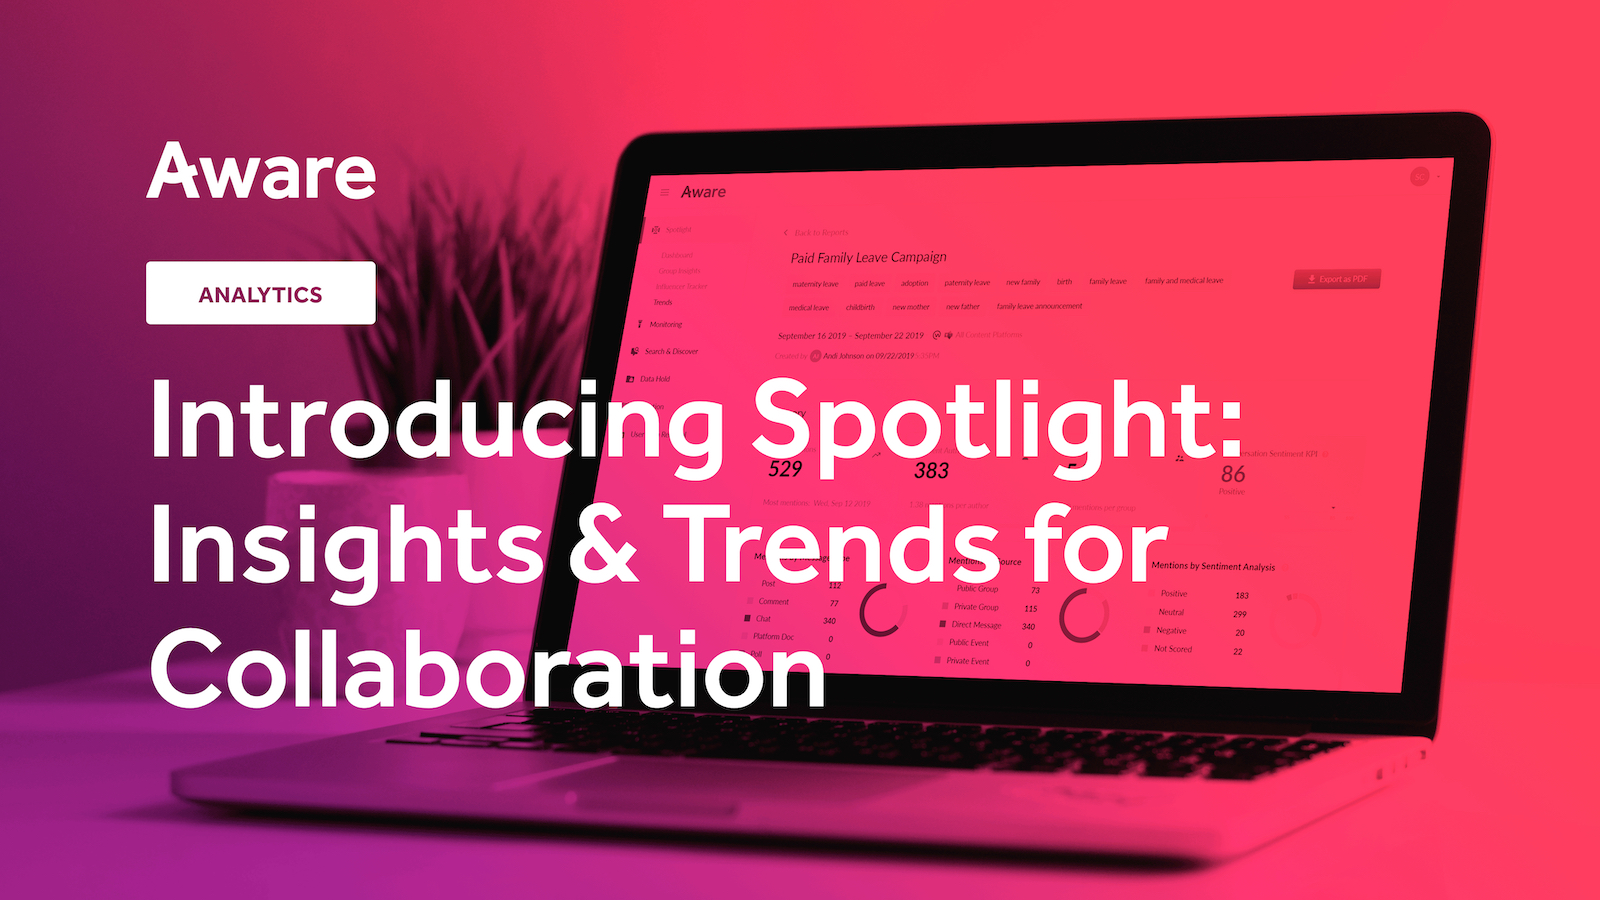 Introducing Aware Spotlight: Insights & Trends for Collaboration